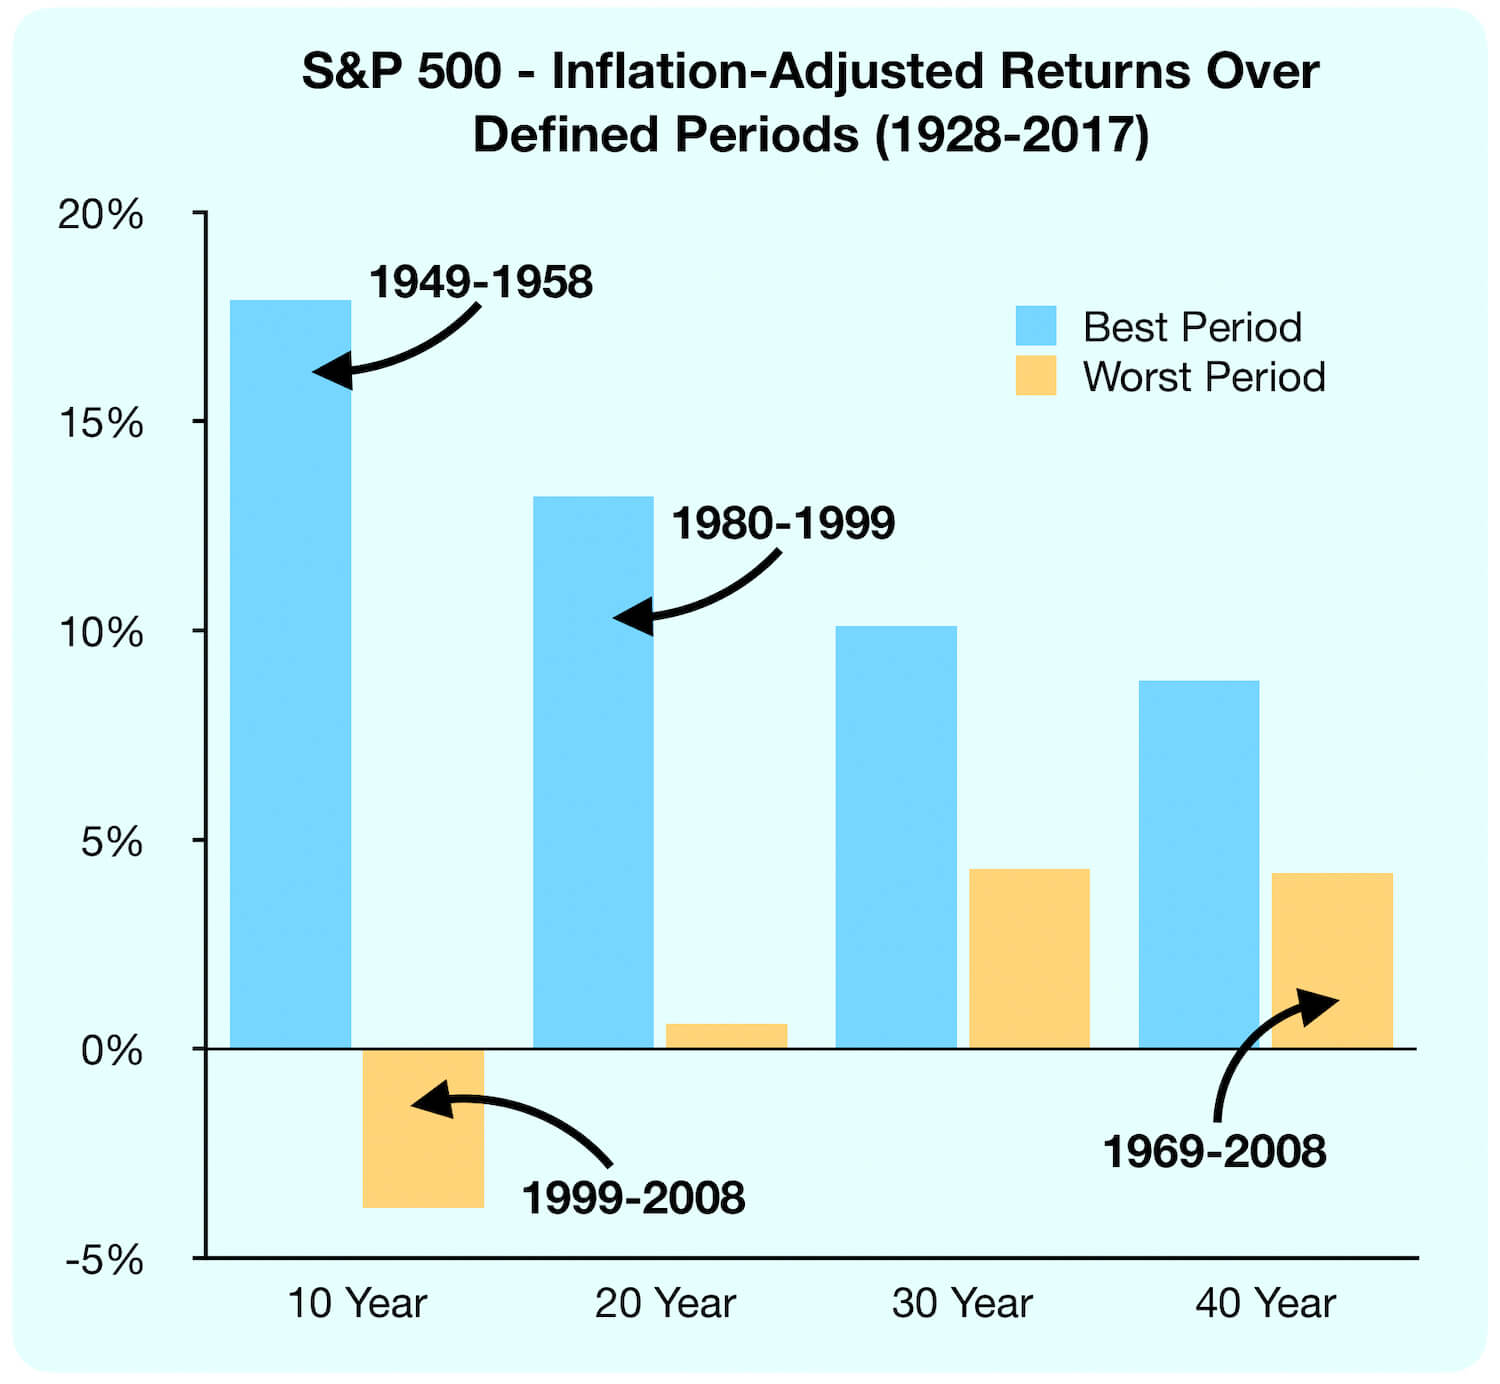 S&P 500 - Inflation adjusted returns over defined periods (1928-2017)